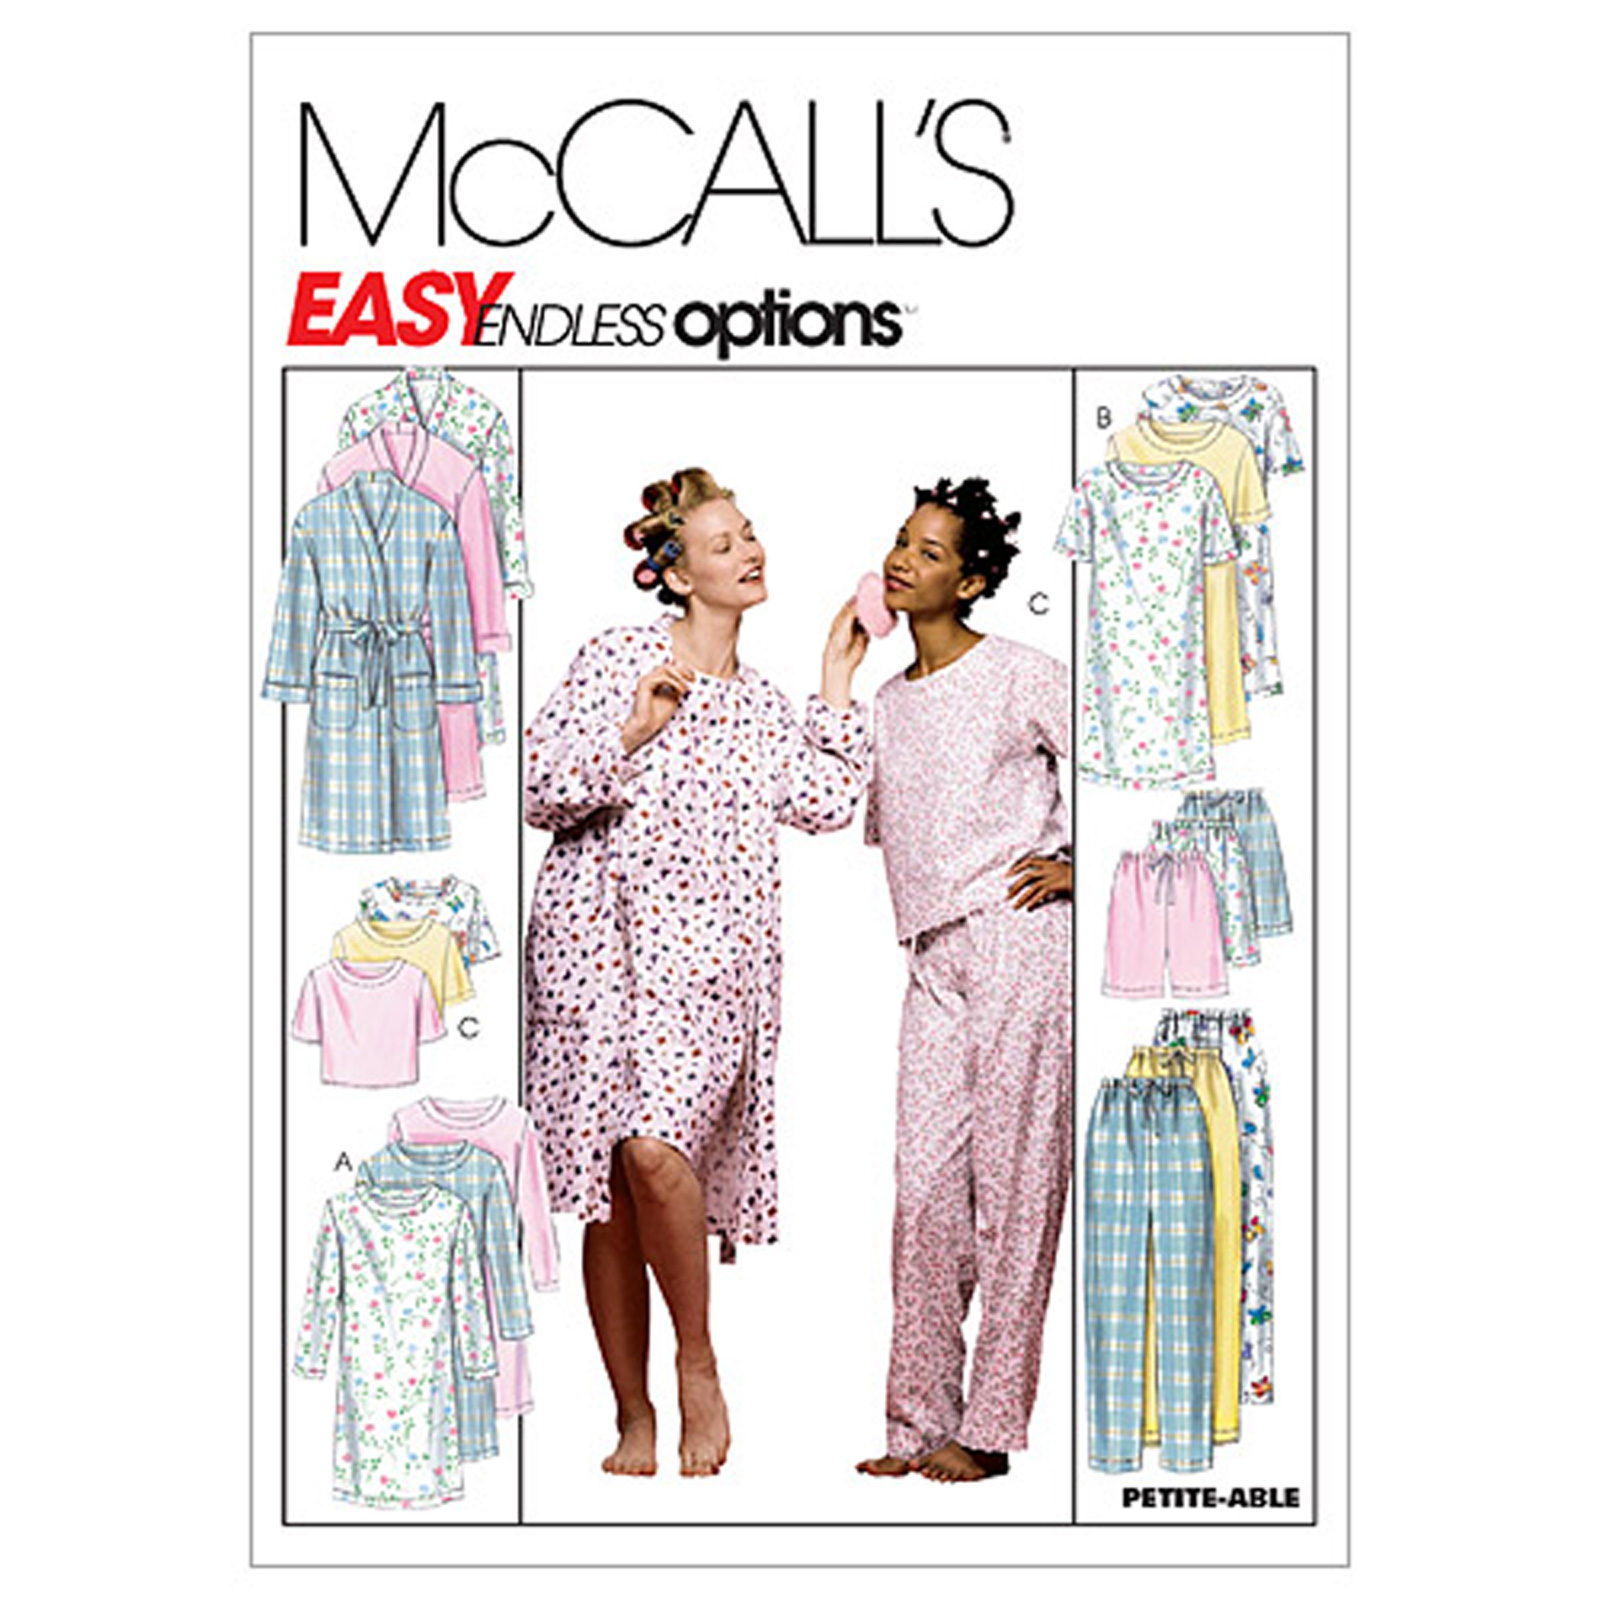 McCall's Misses' Robe Nightgown Or Top and Pull-On Pants Or Shorts Pattern M2476 Size 0Y0 by Kwik Sew in USA